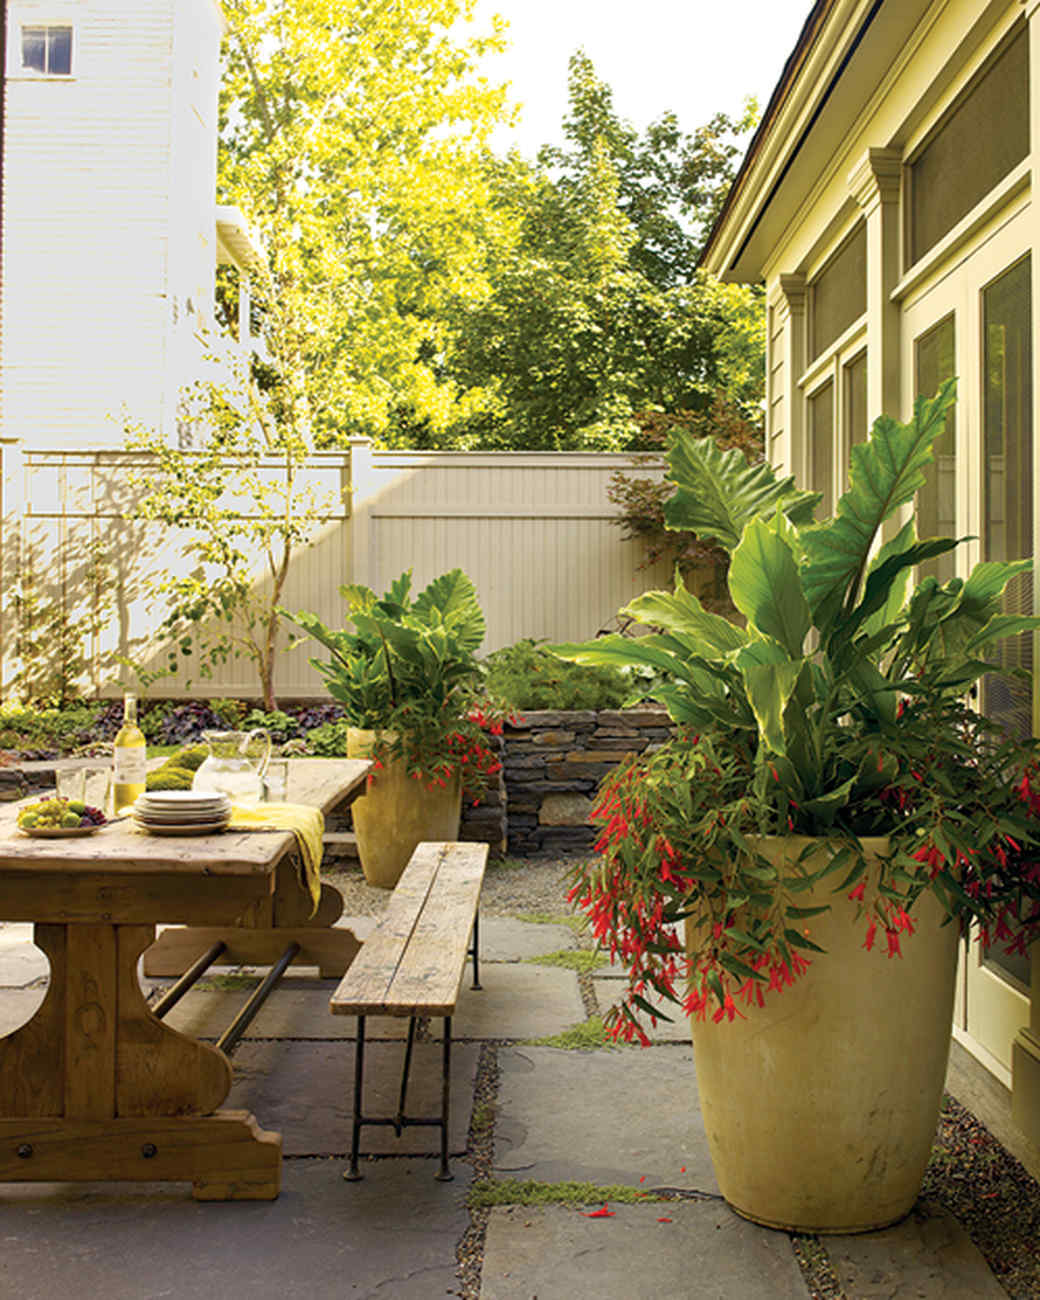 Favorite Shade Loving Plants for the Front Porch | Hearth & Vine - formerly Garden Matter